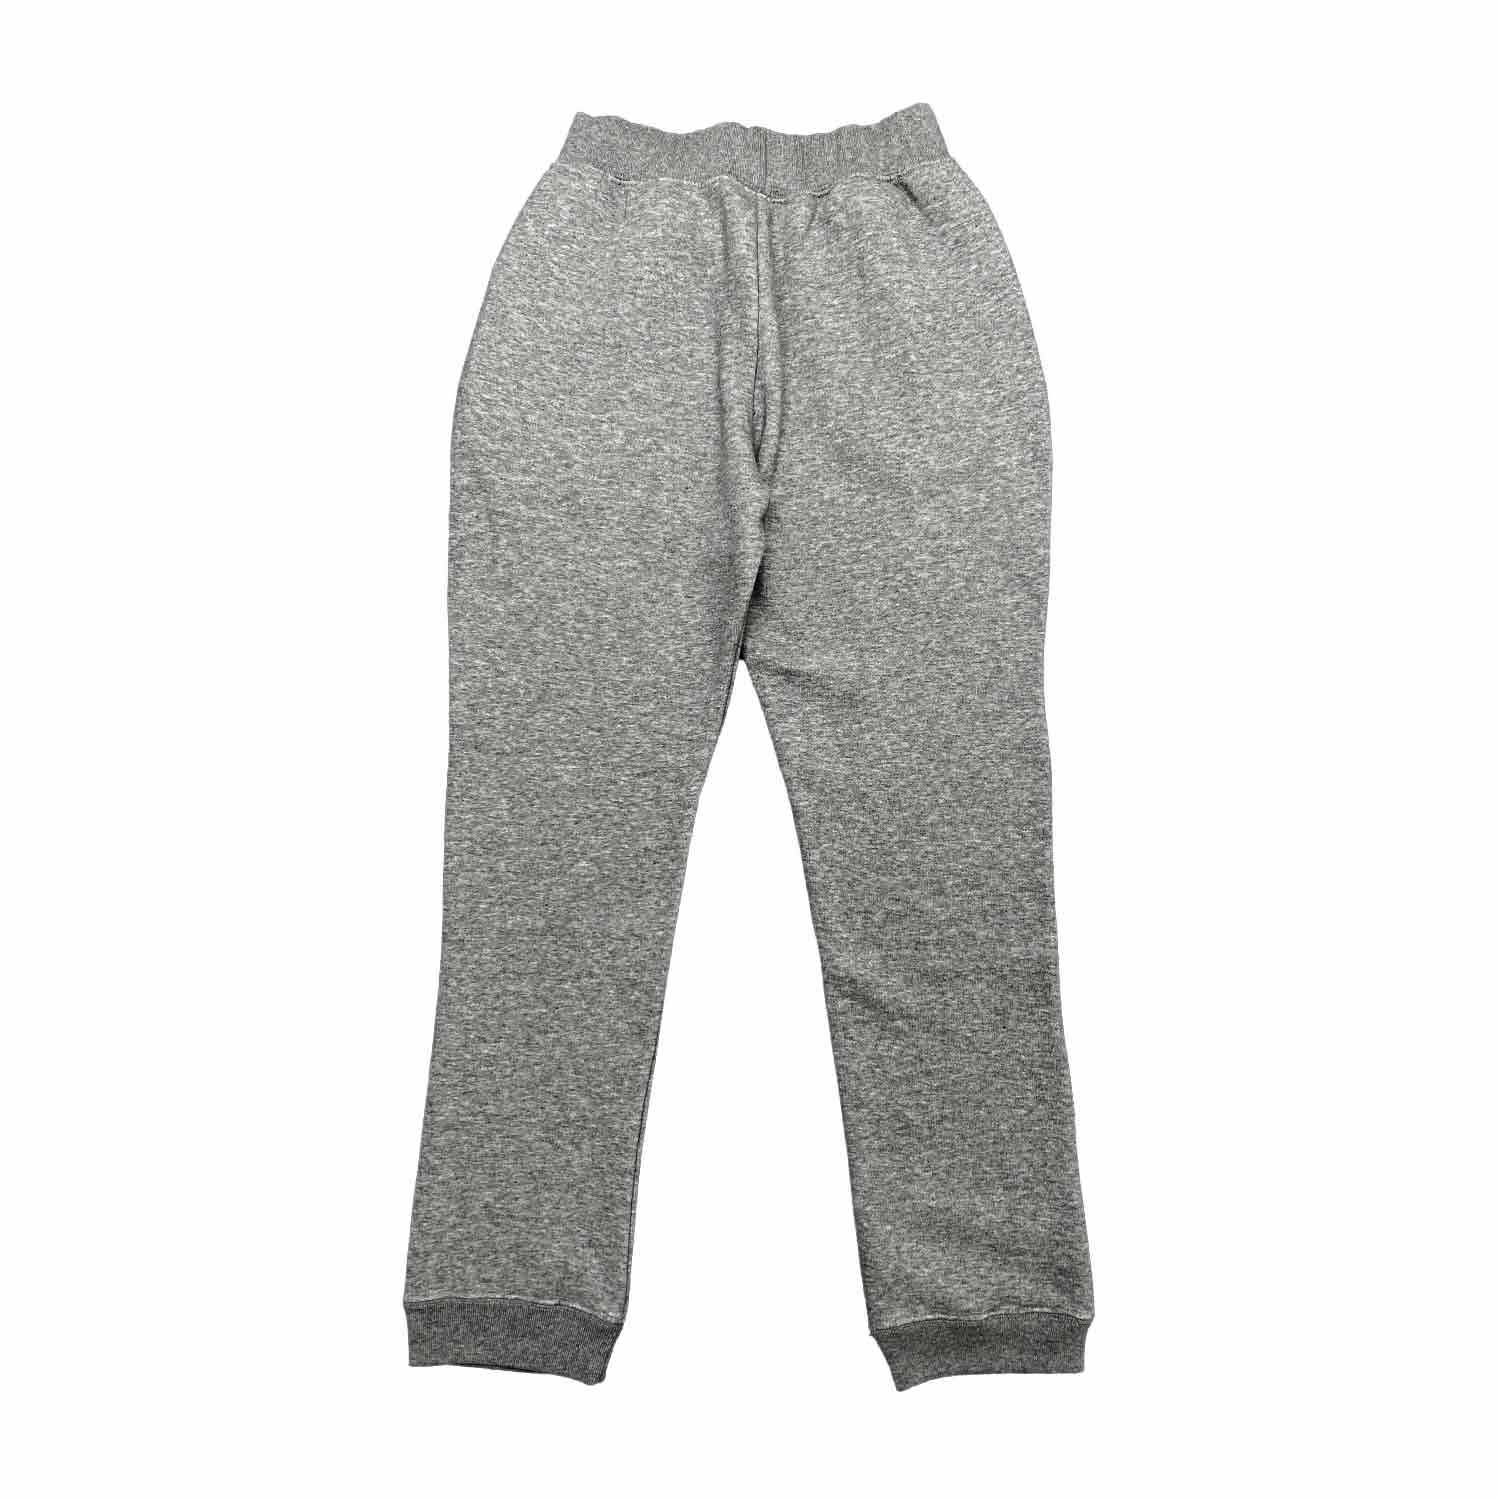 F/B POOPING SWEAT PANTS - BRINDLE